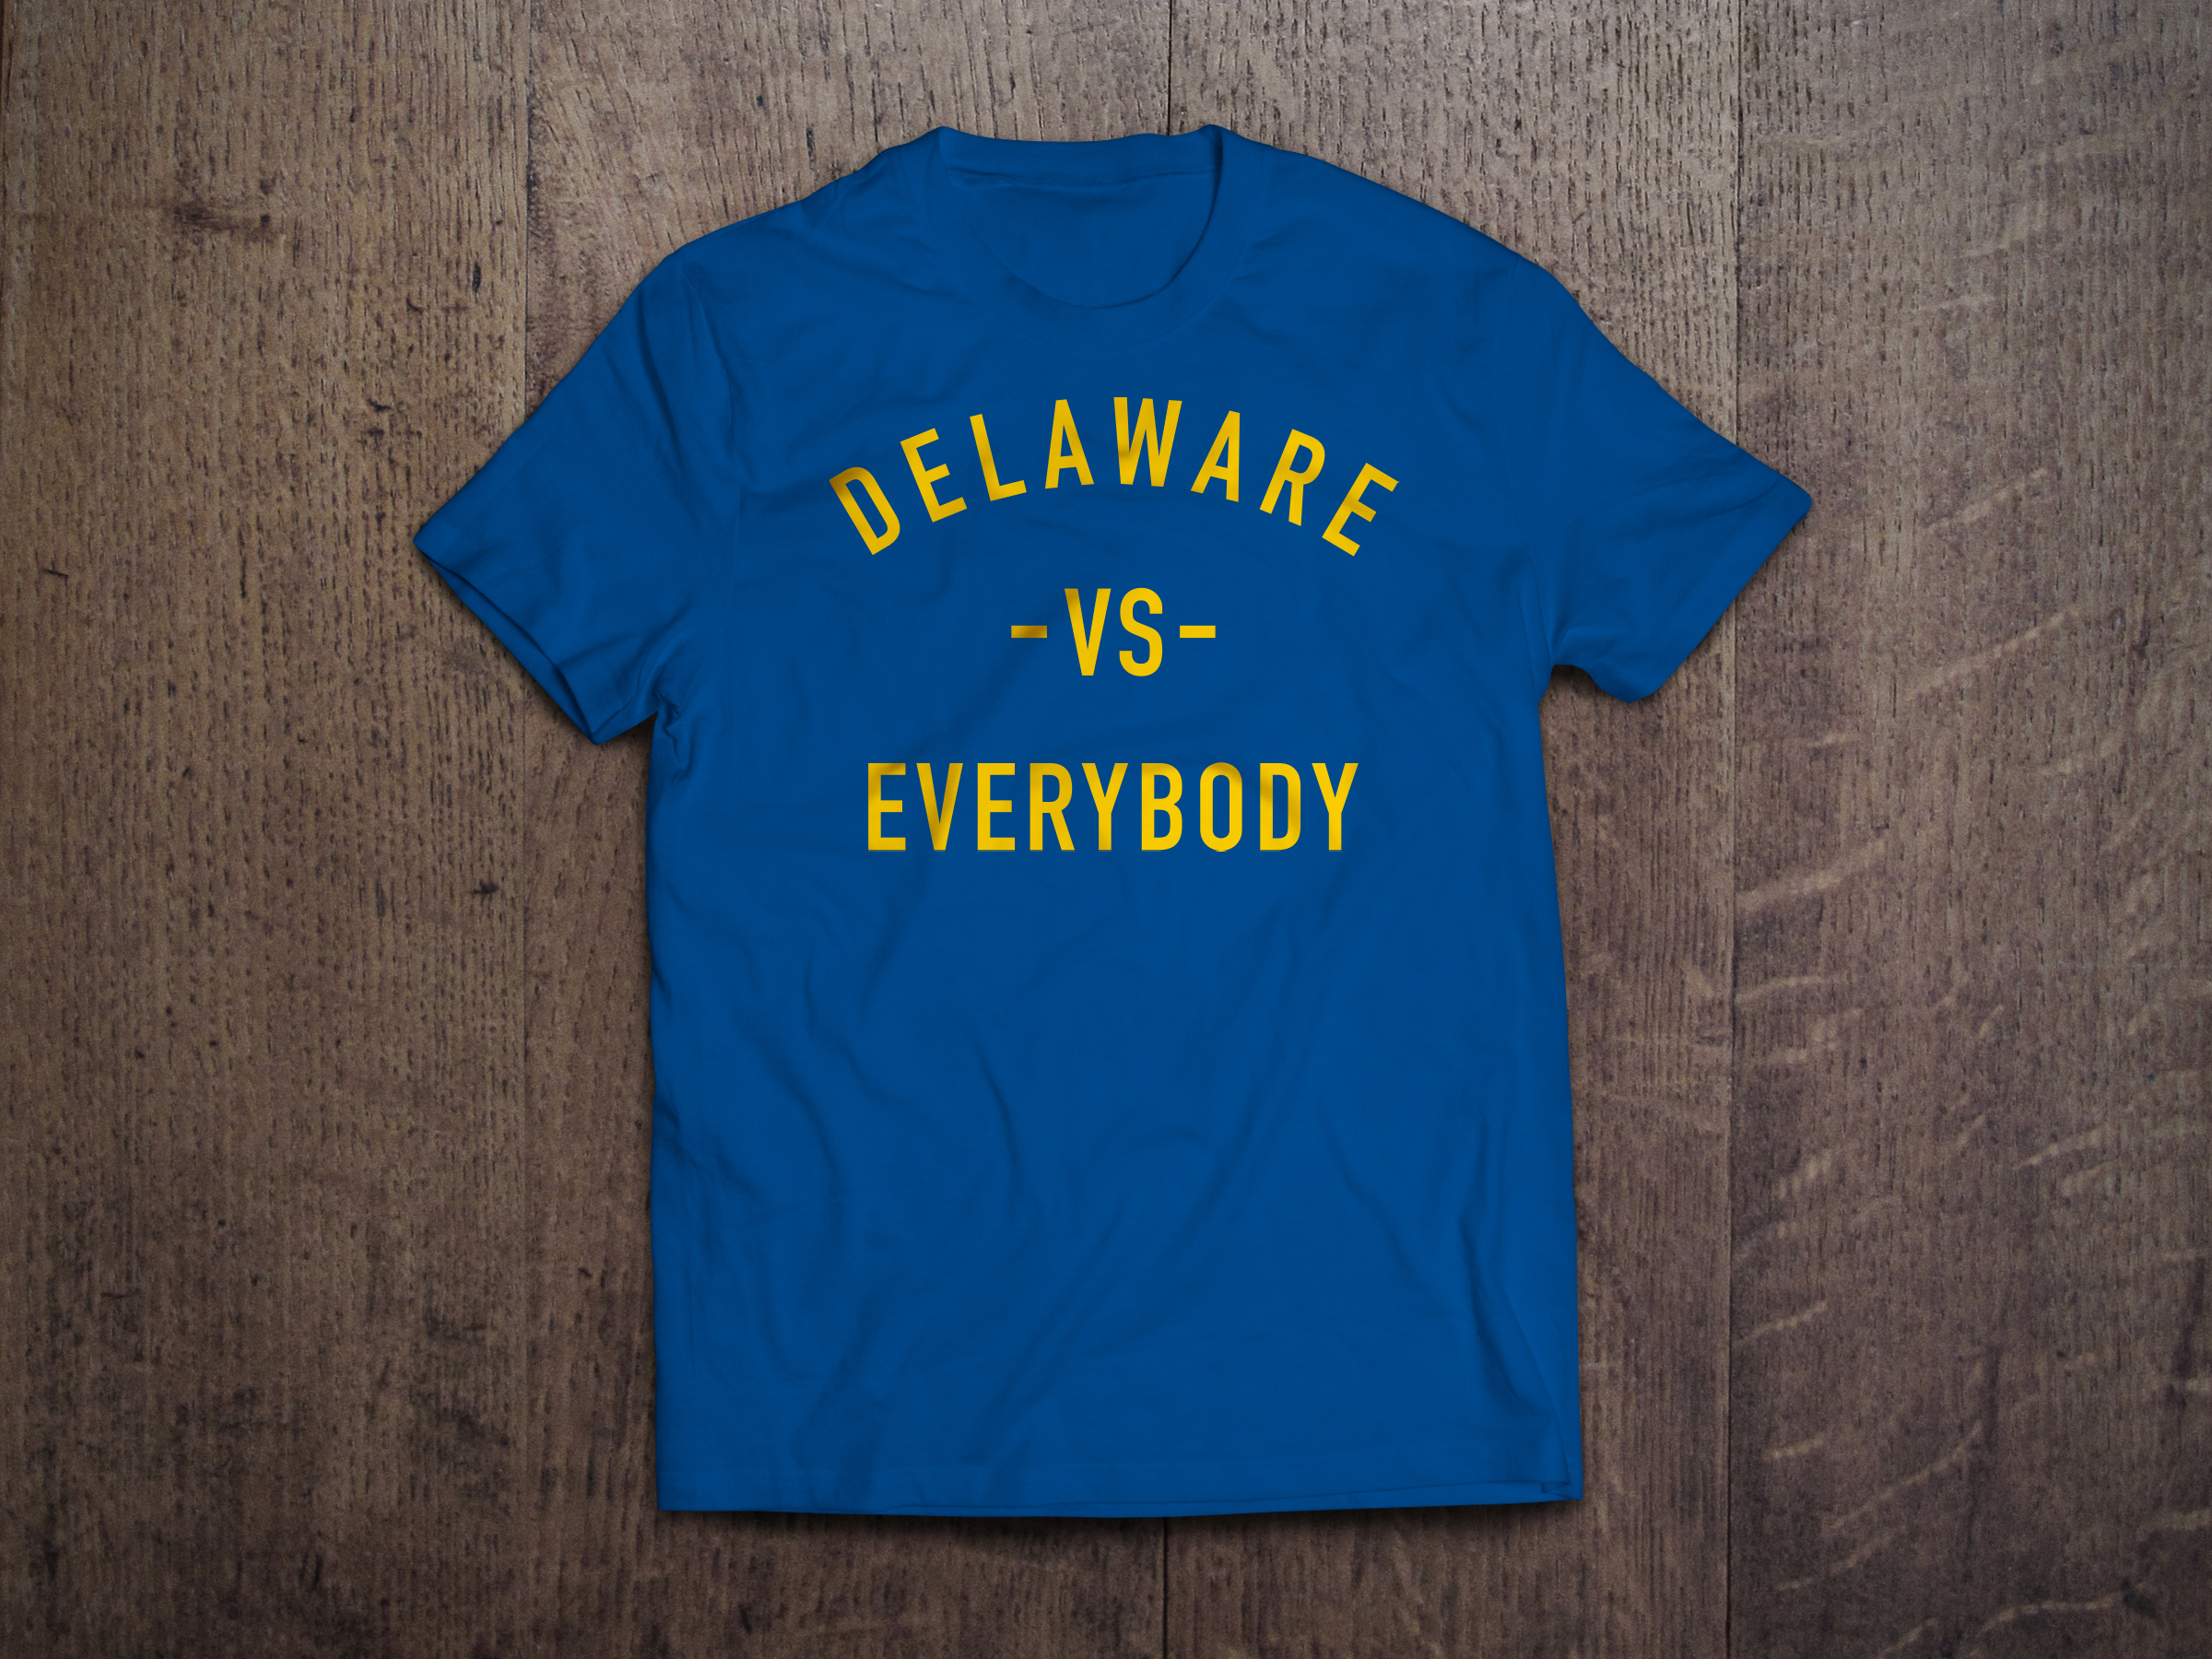 18 Reasons NOT to go to the University of Delaware